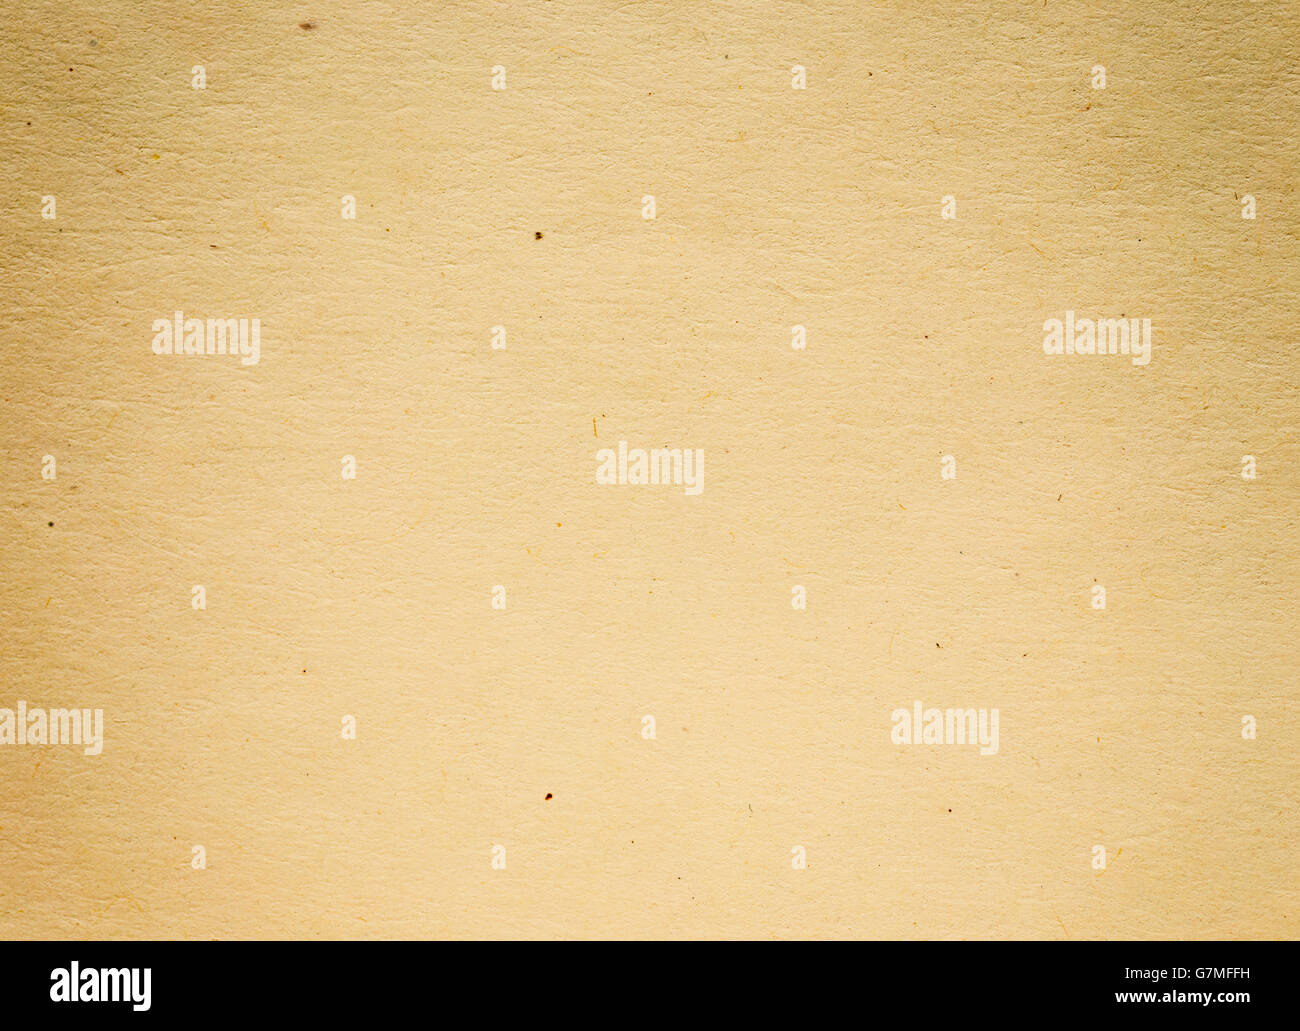 Vintage paper texture with copy space - Stock Image